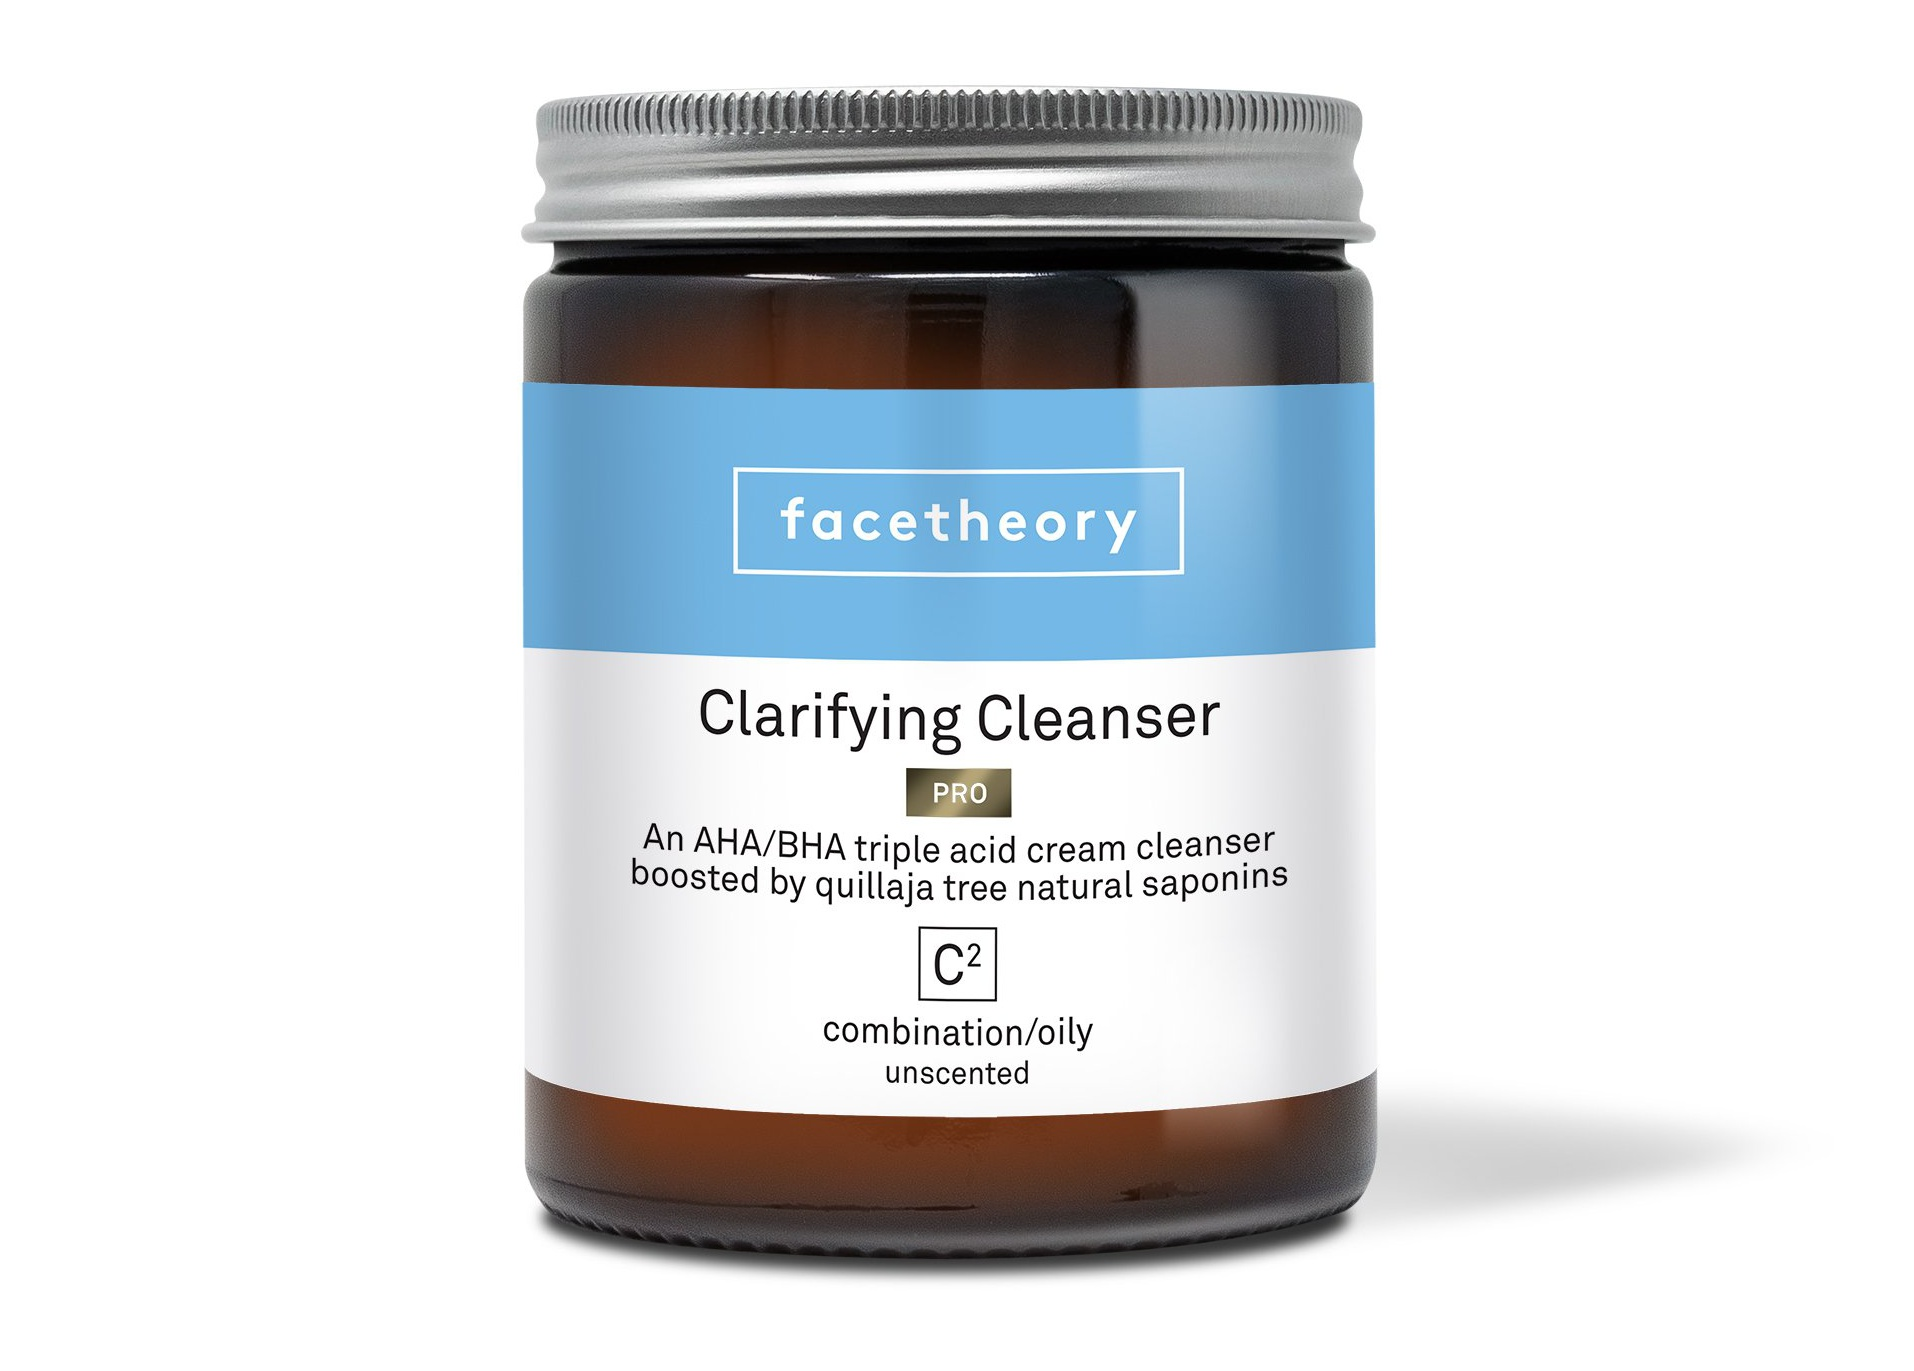 facetheory Clarifying Cleanser C2 - Unscented